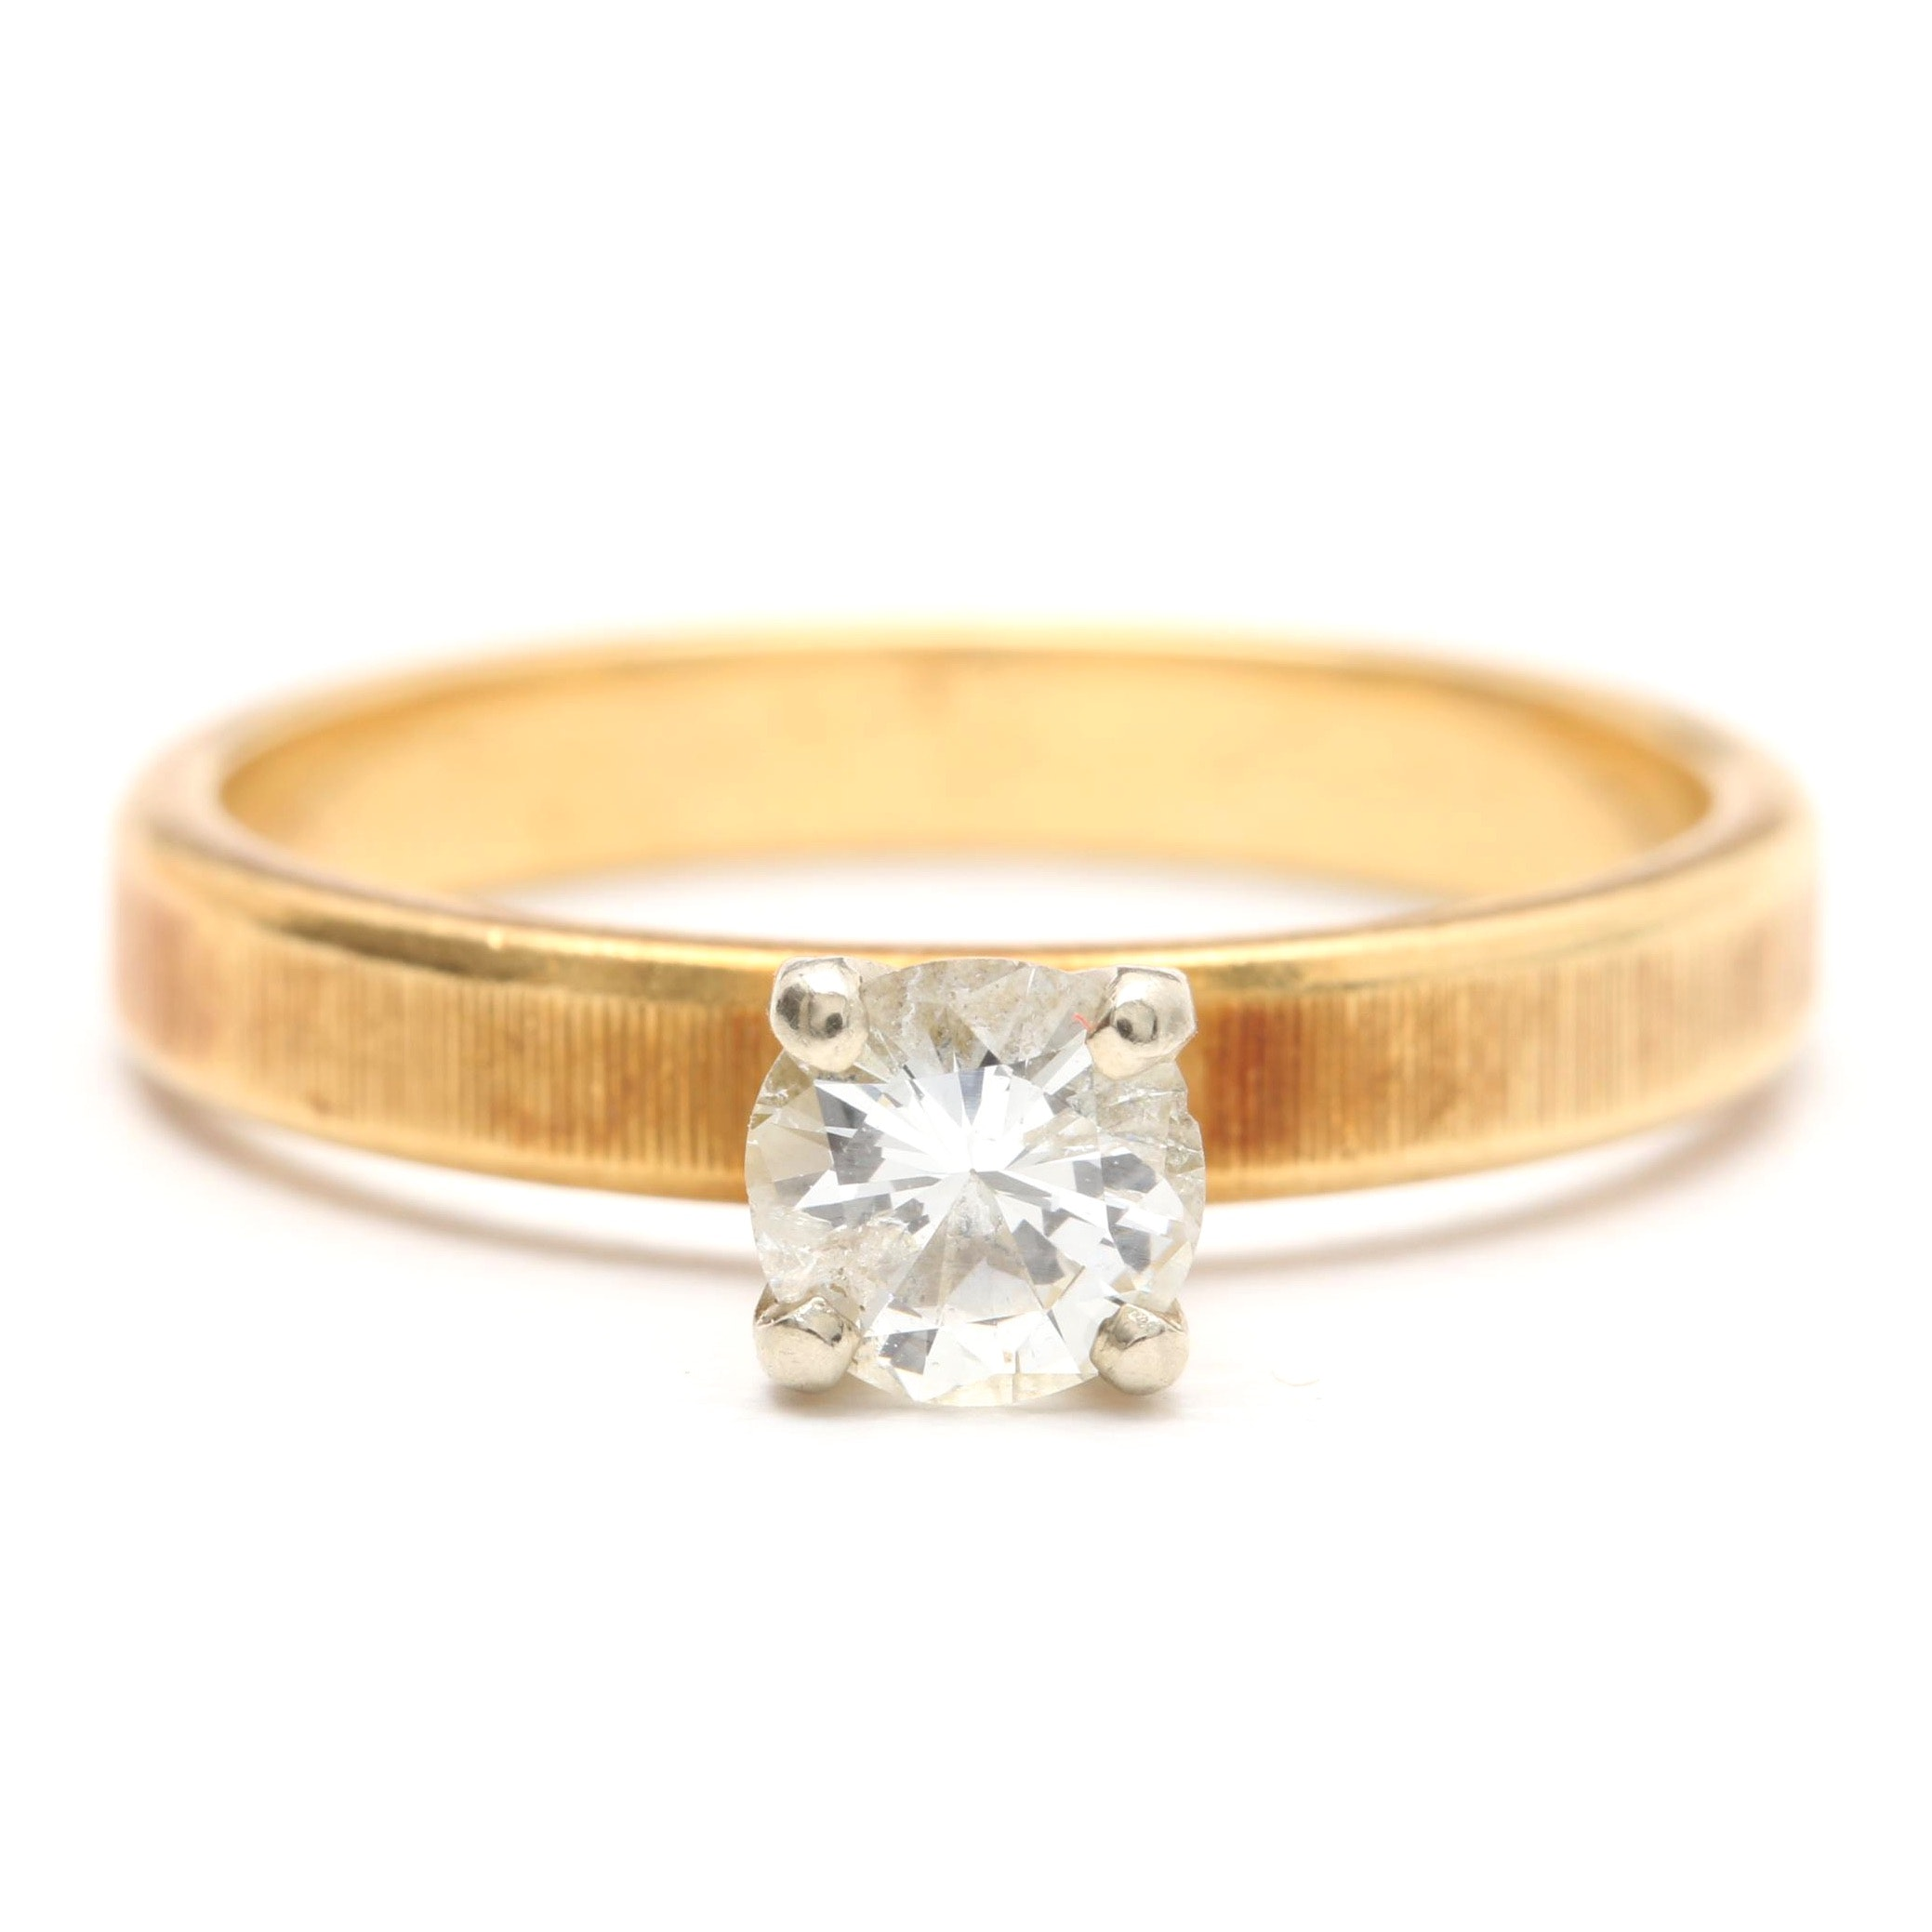 18K Yellow Gold Solitaire Diamond Ring